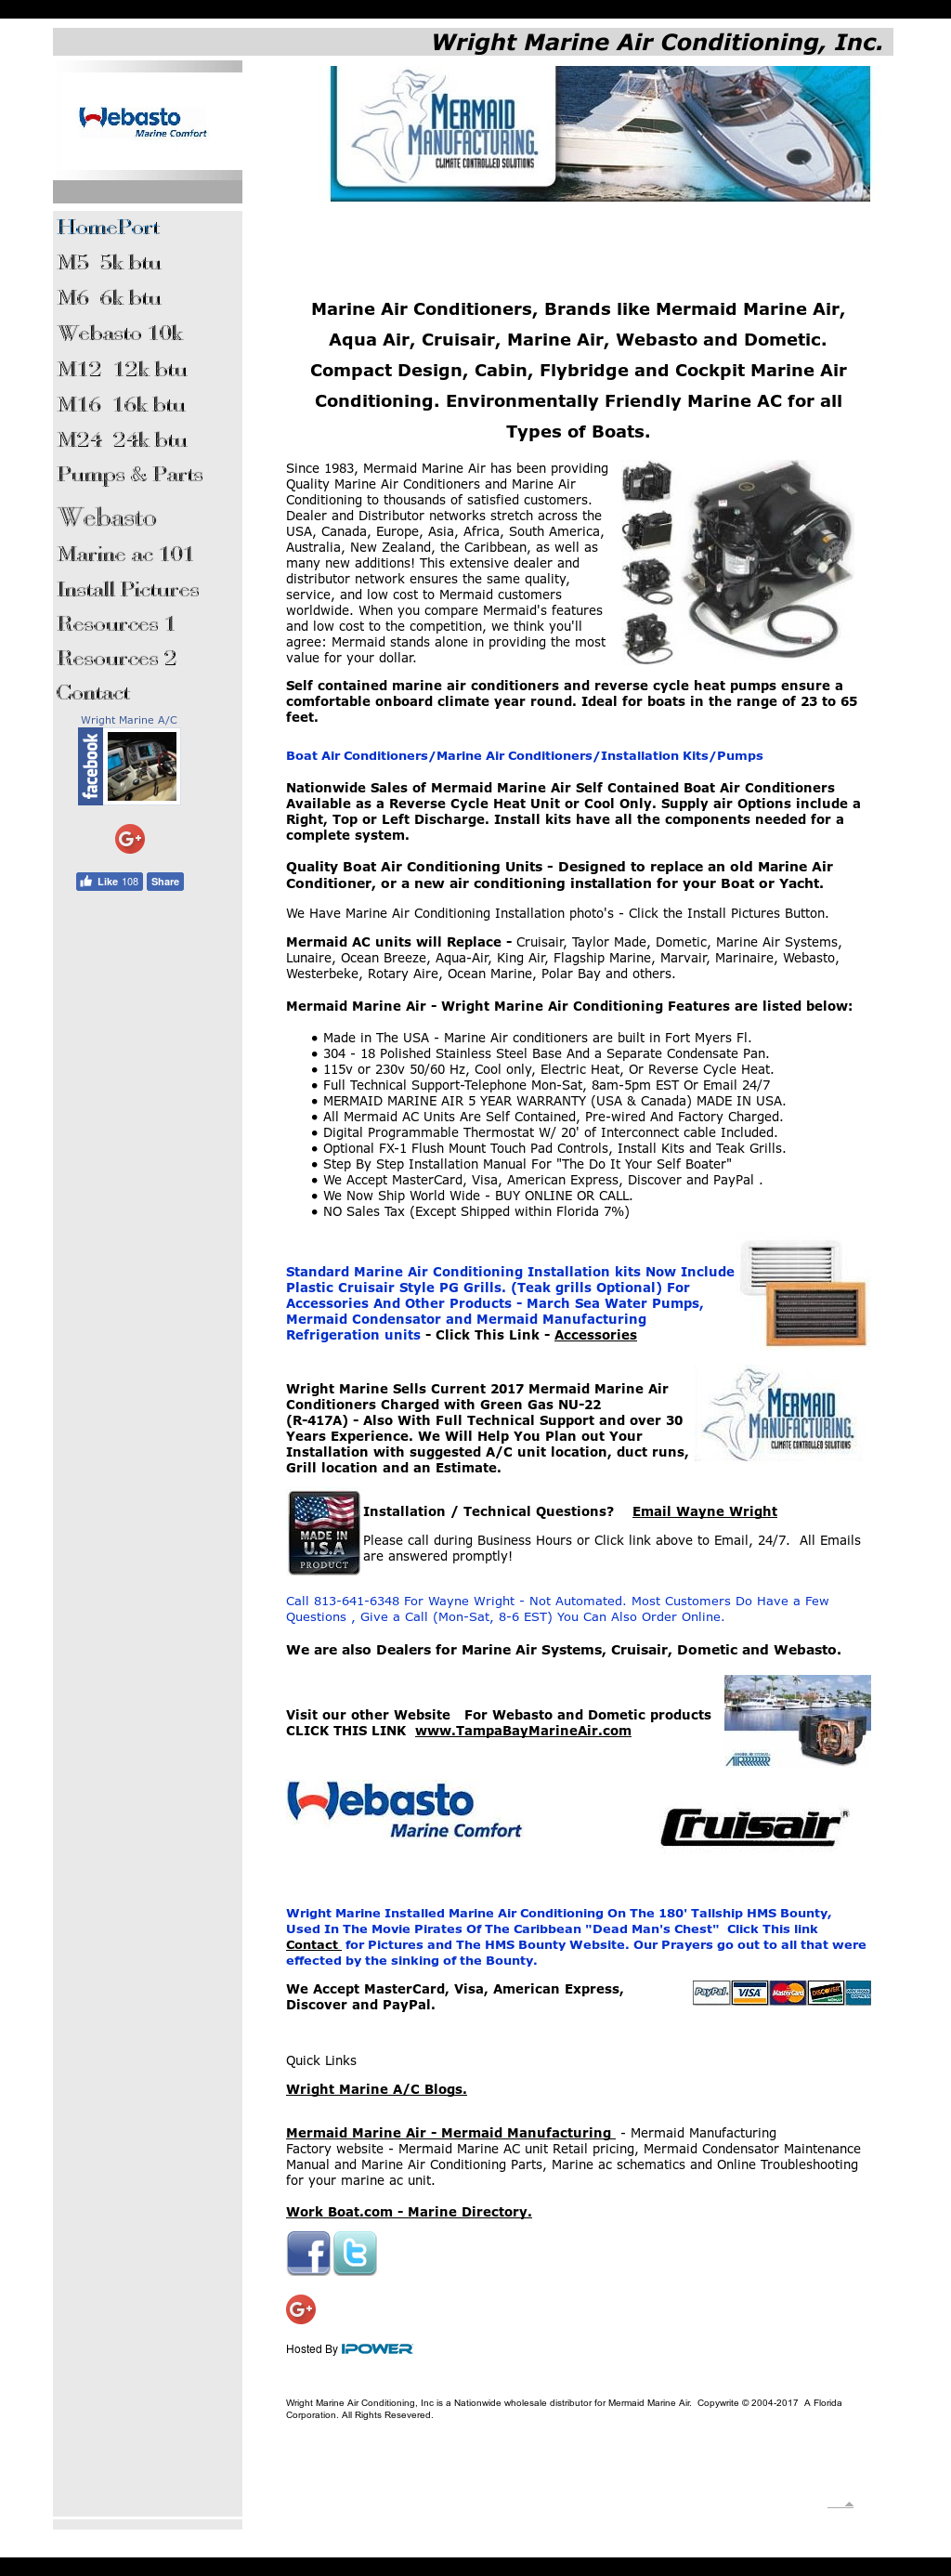 Wright Marine Air Conditioning Competitors, Revenue and